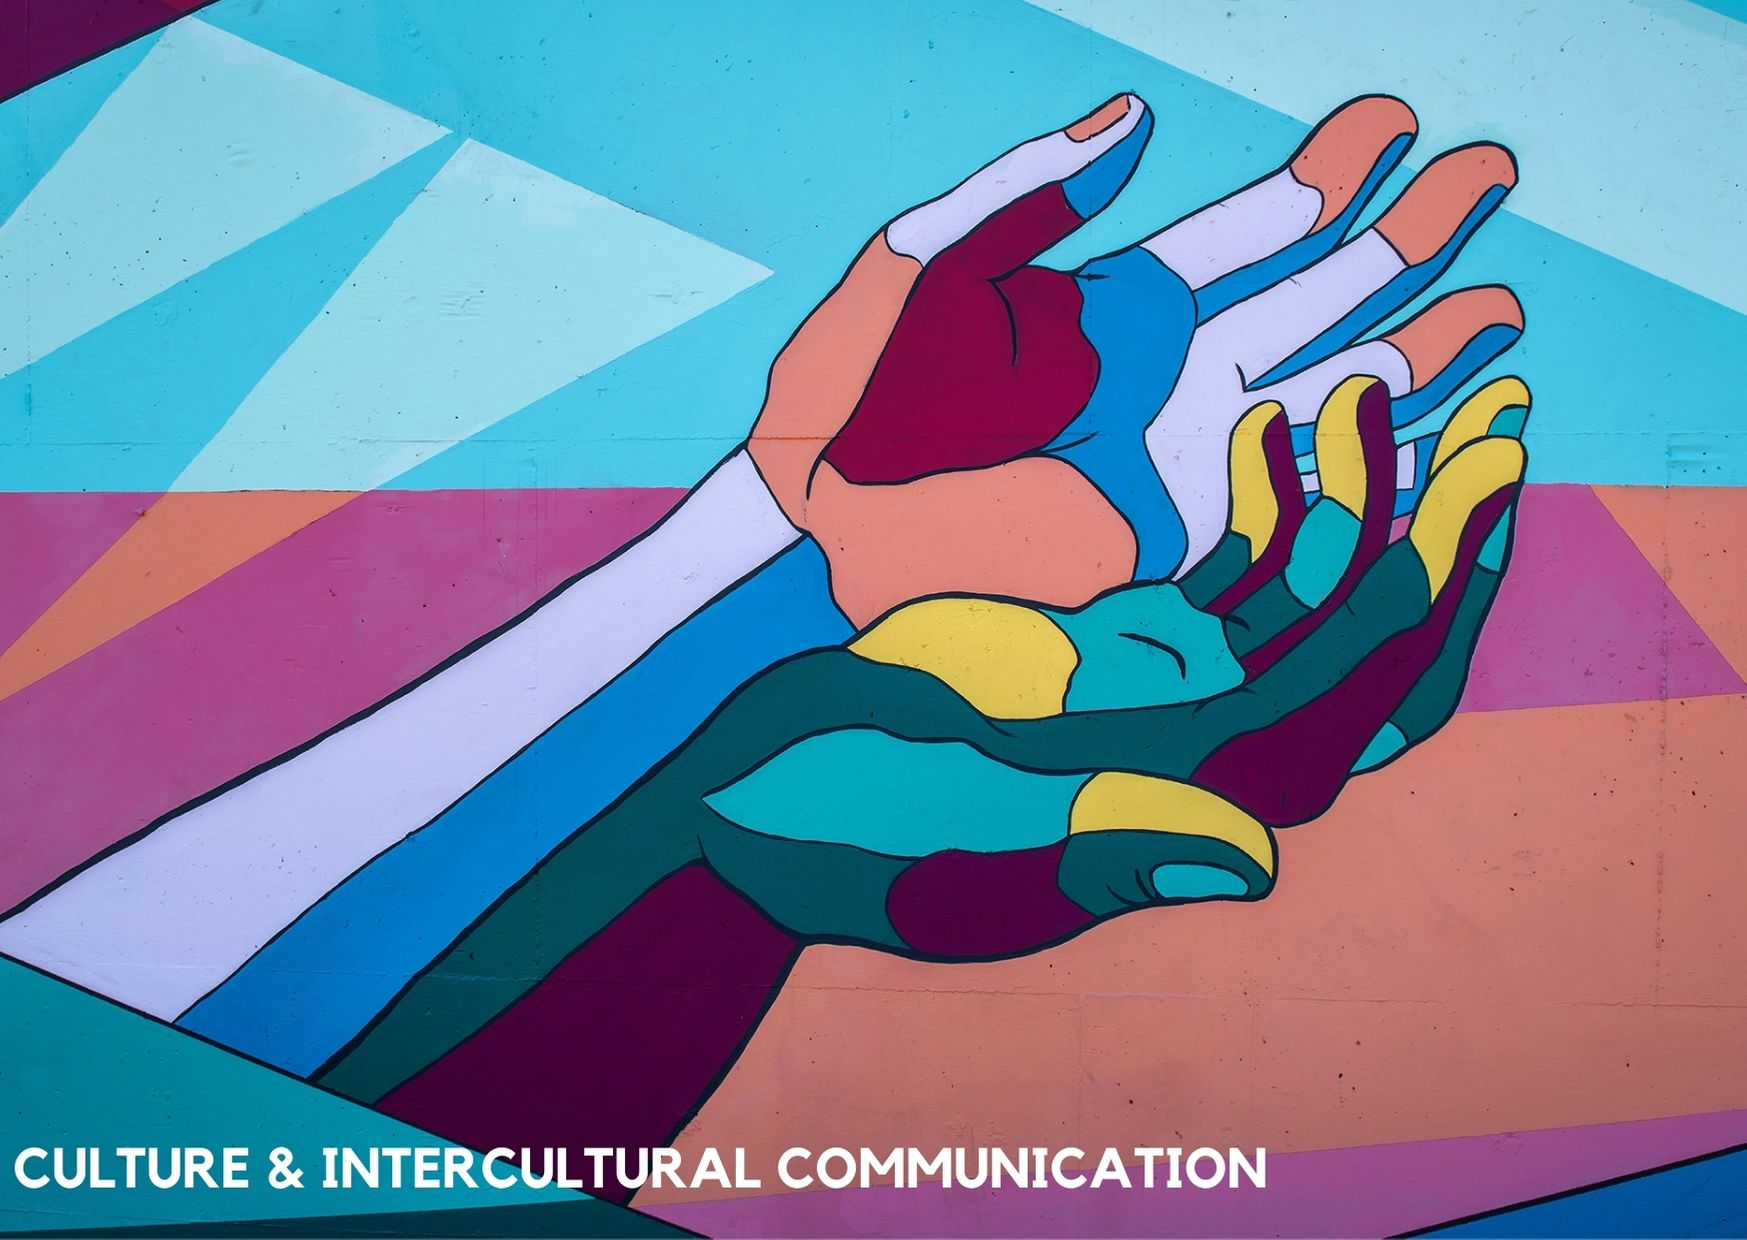 Culture and inter-cultural communication